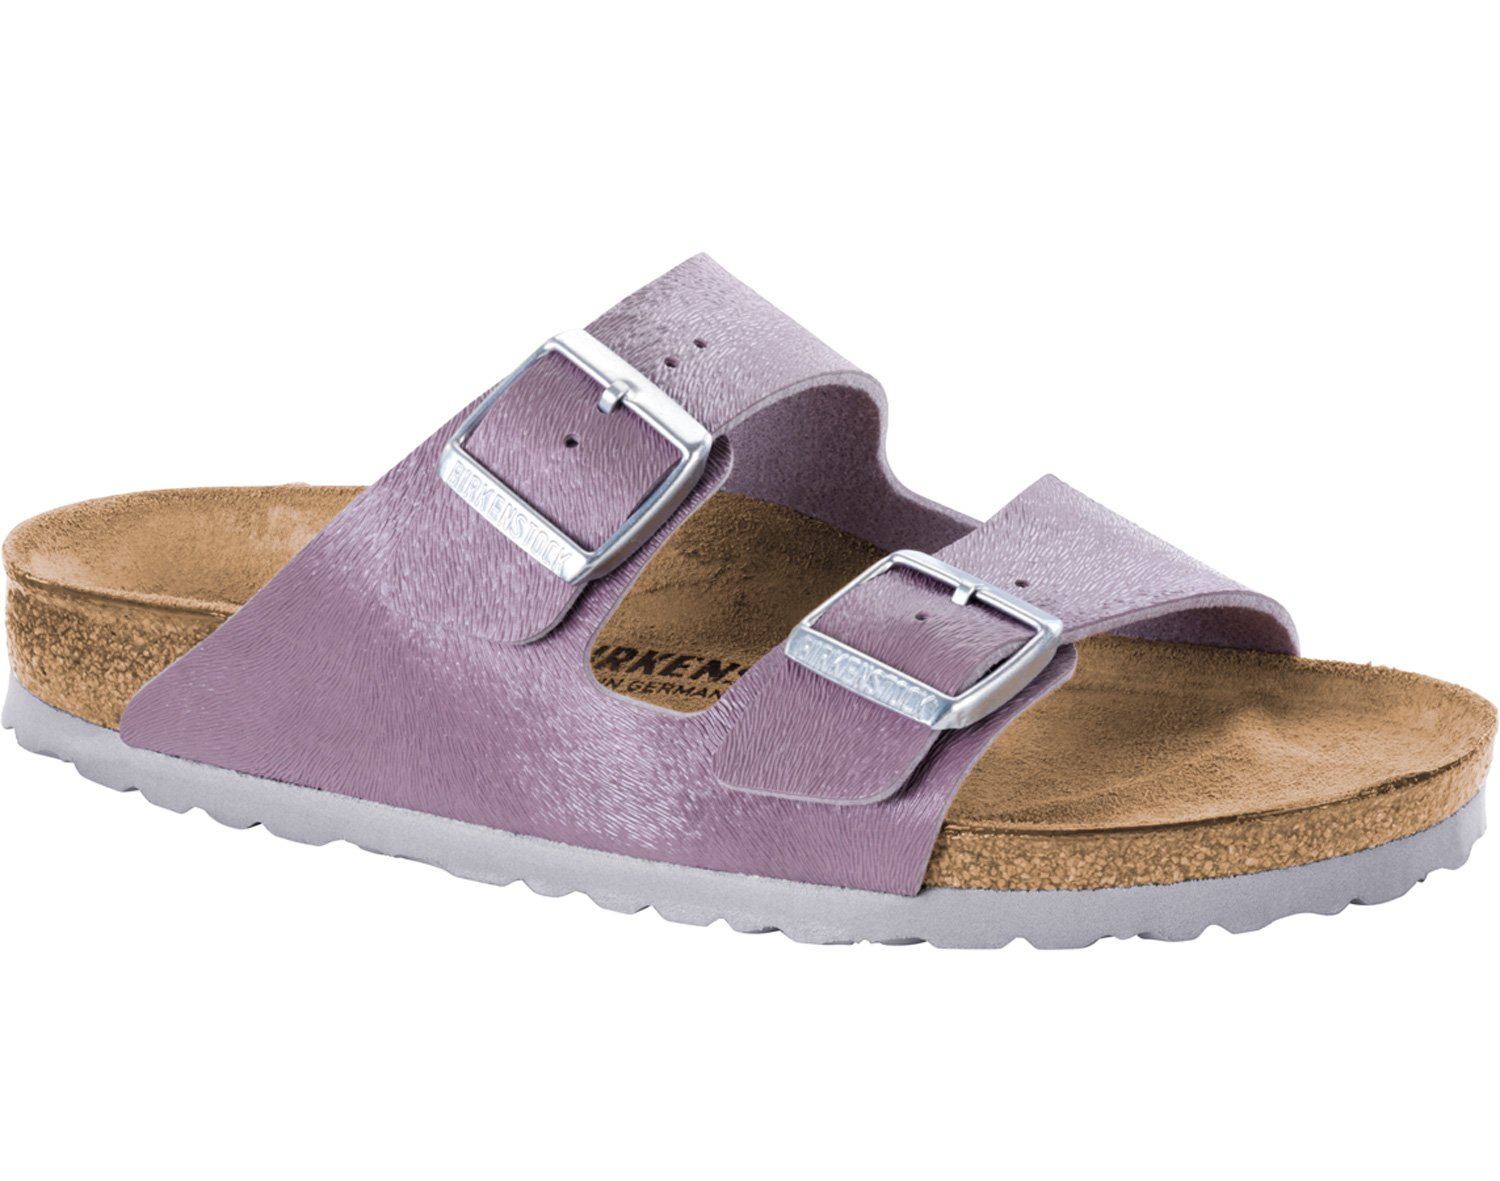 BIRKENSTOCK Damen Arizona Sandalen  36 EU|Animal Fascination Purplel (1008692)